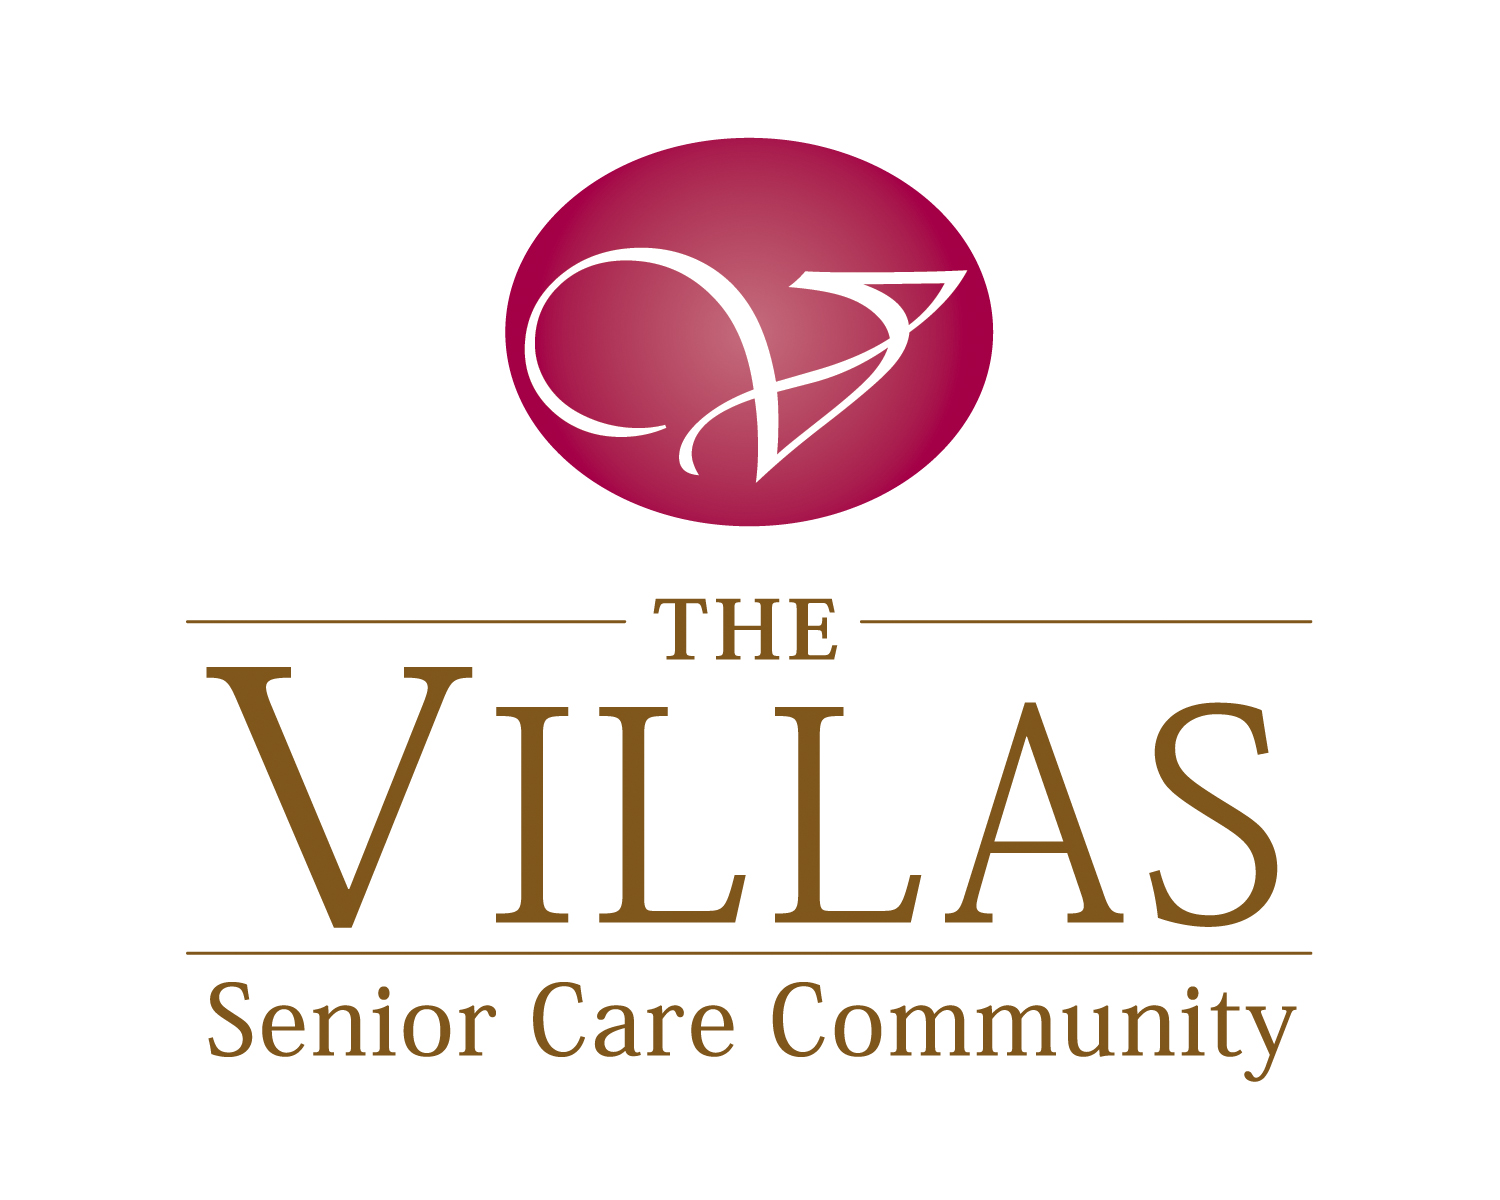 The Villas Senior Care Community